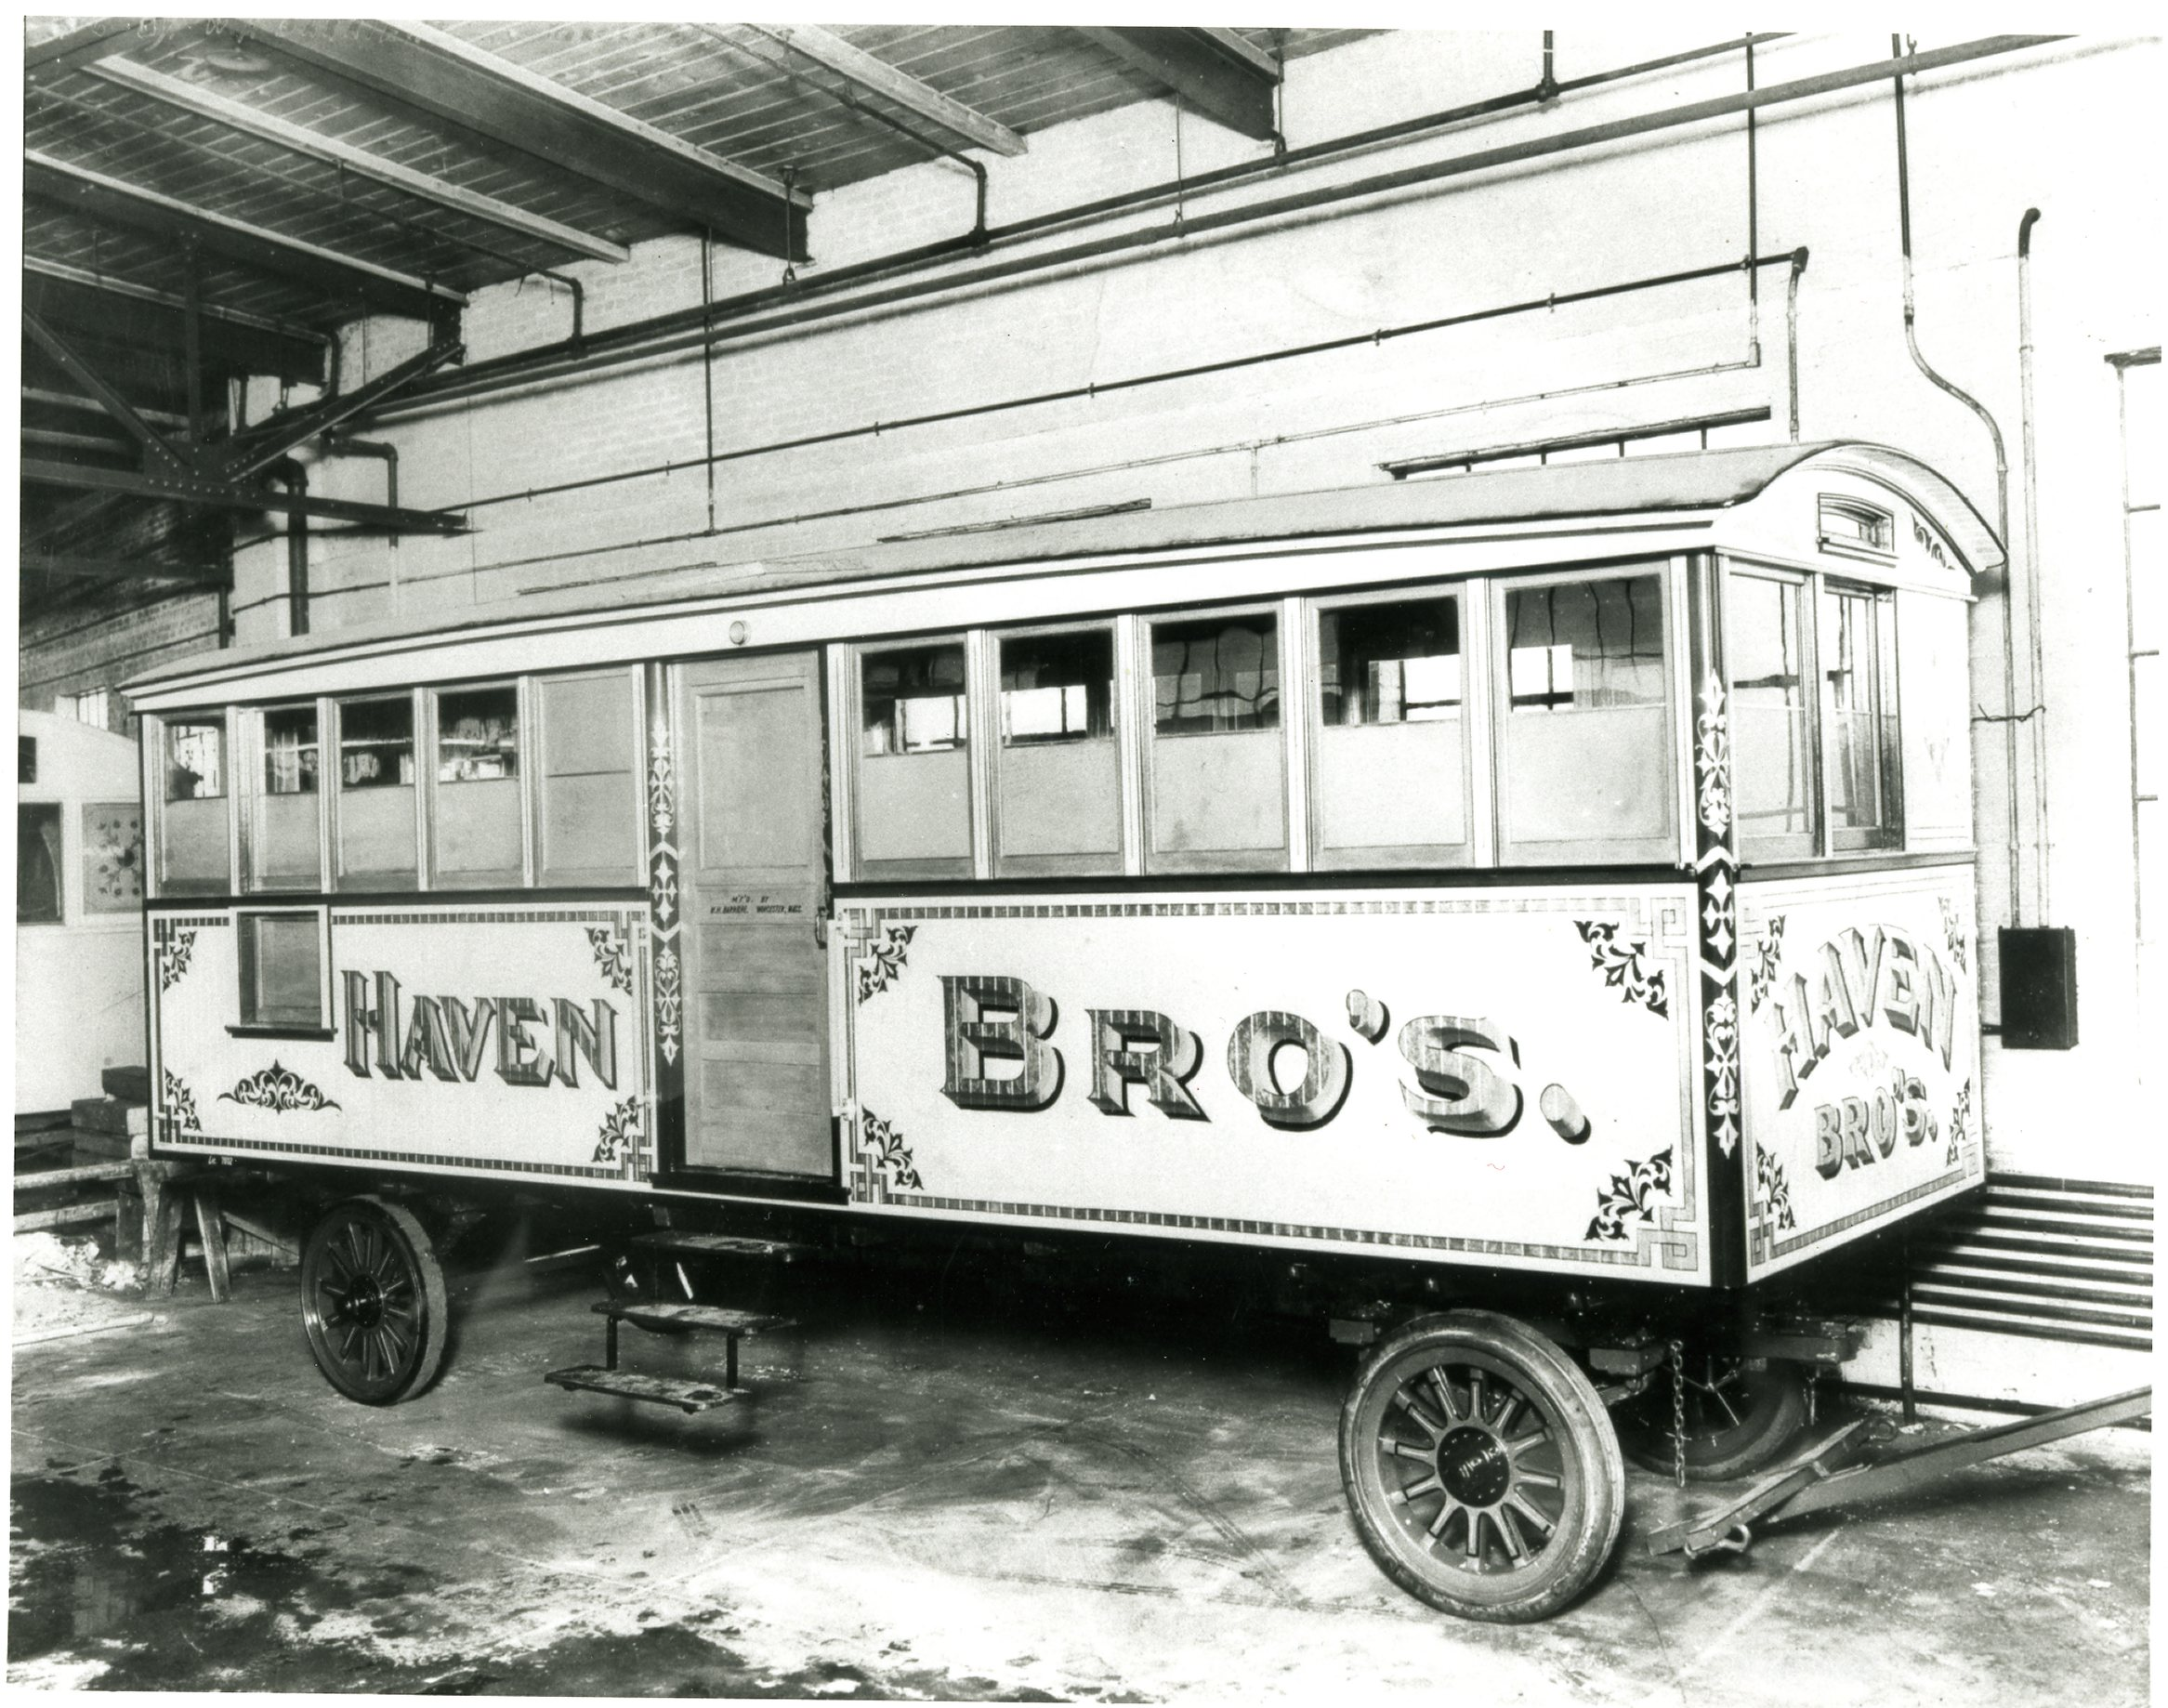 The diner began as a horse-drawn cart. Today, patrons order and eat (if they can find a seat) in a silver Morse dining car pulled by a Ford commercial truck.